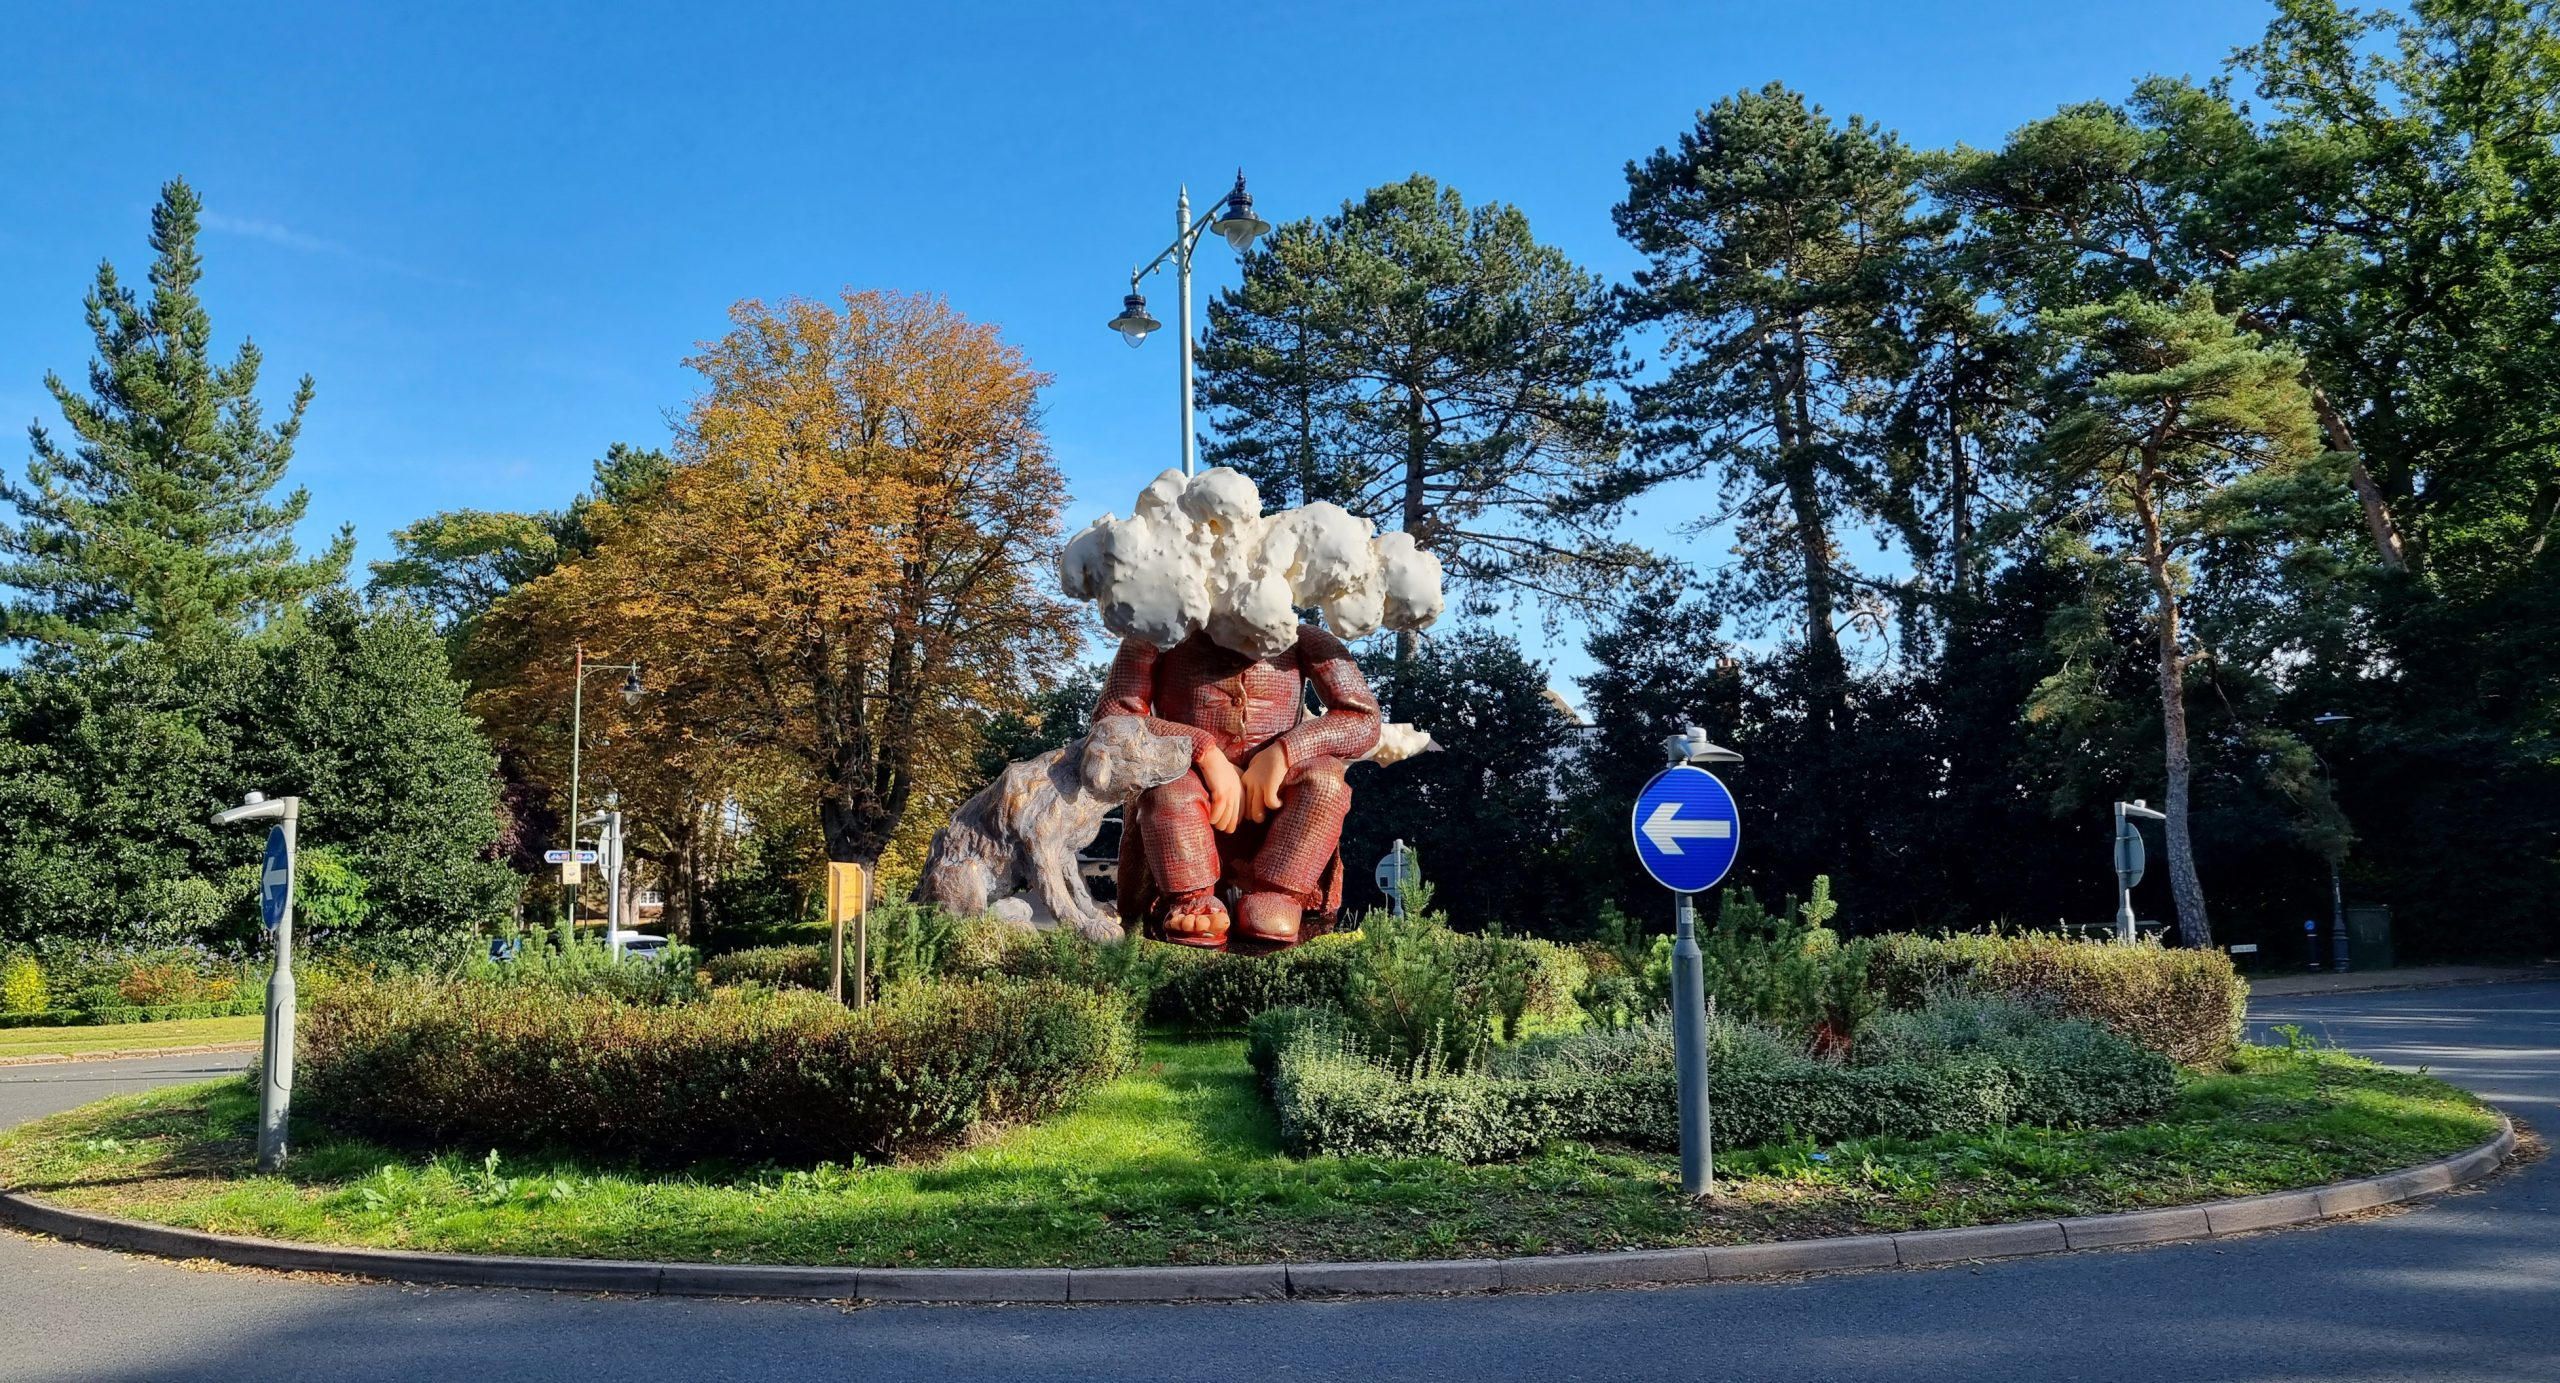 First roundabout in England - Letchworth